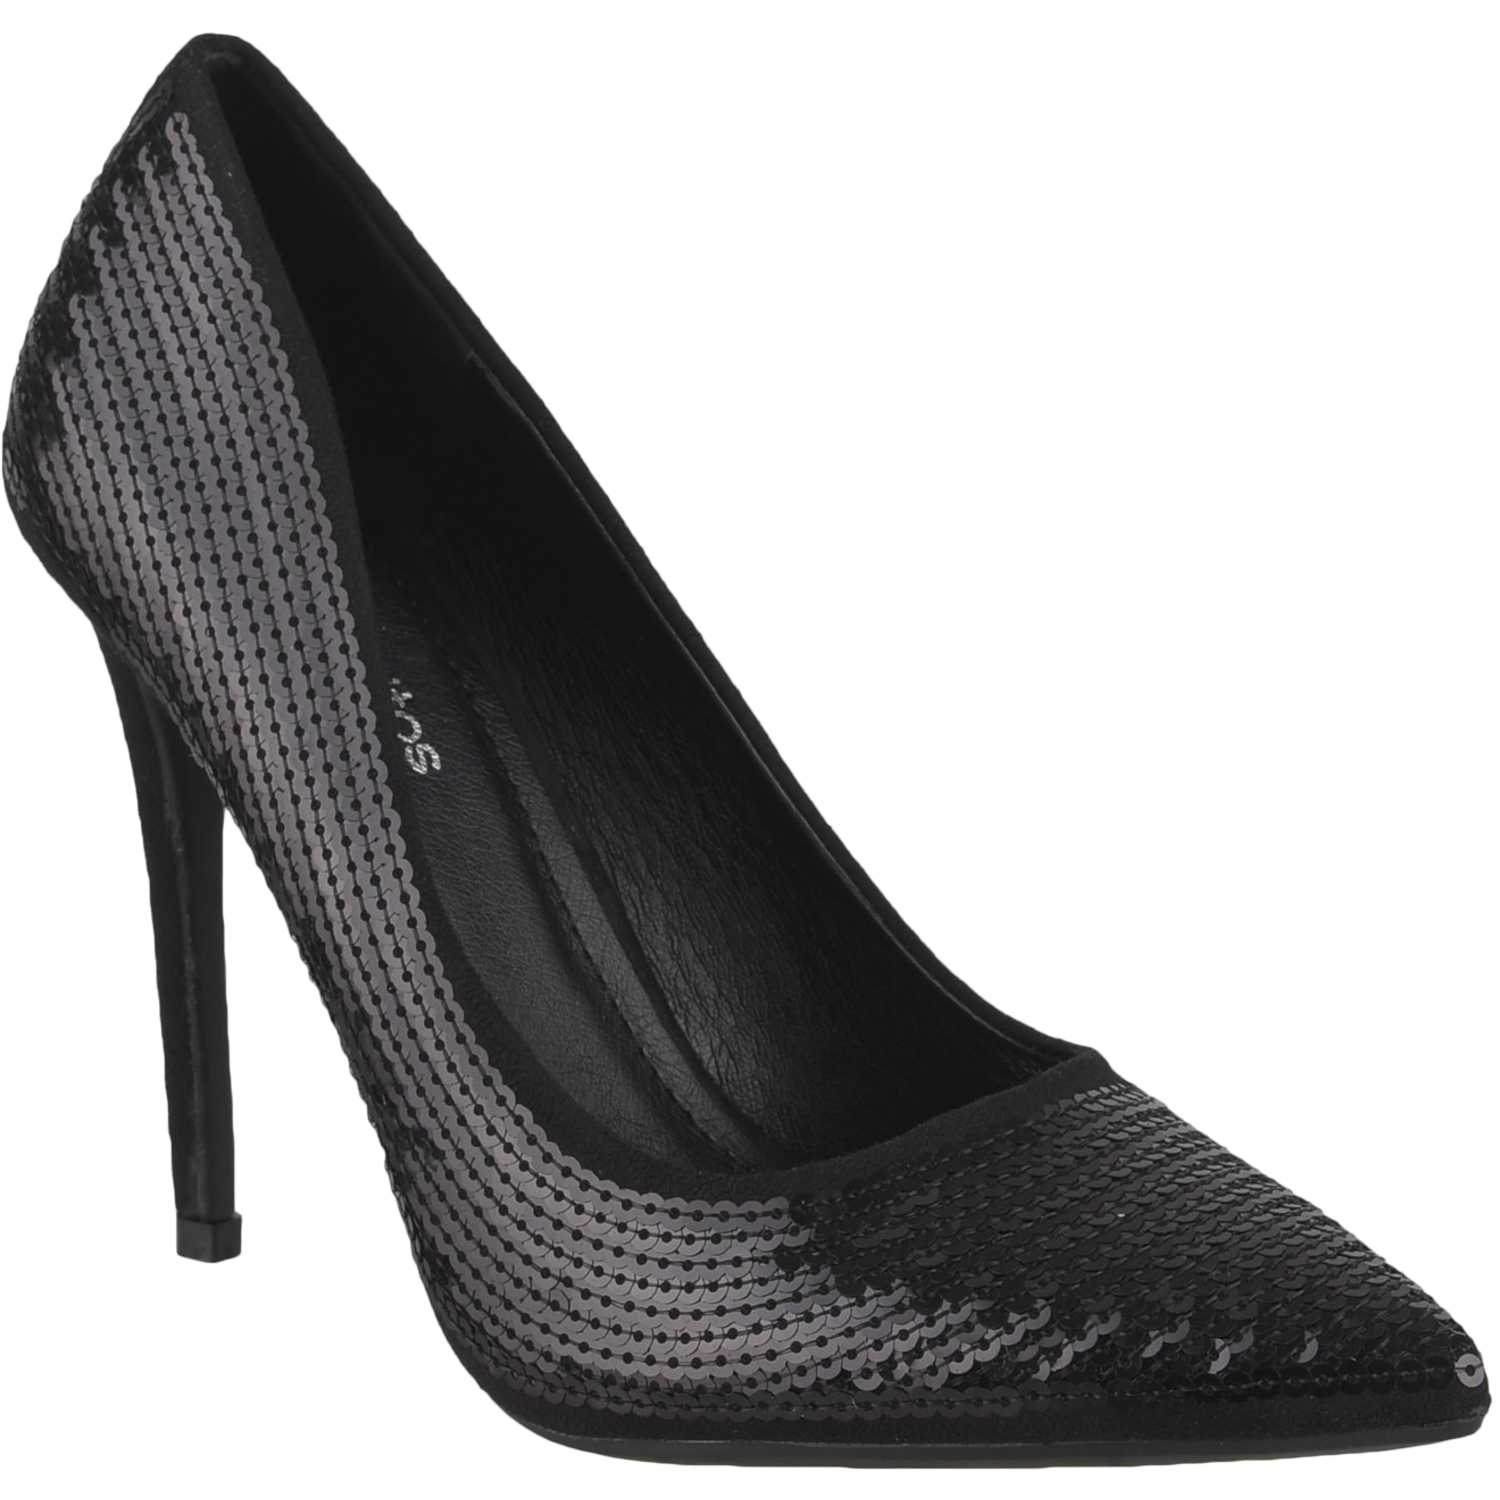 Platanitos f 4846 Negro Estiletos y Pumps